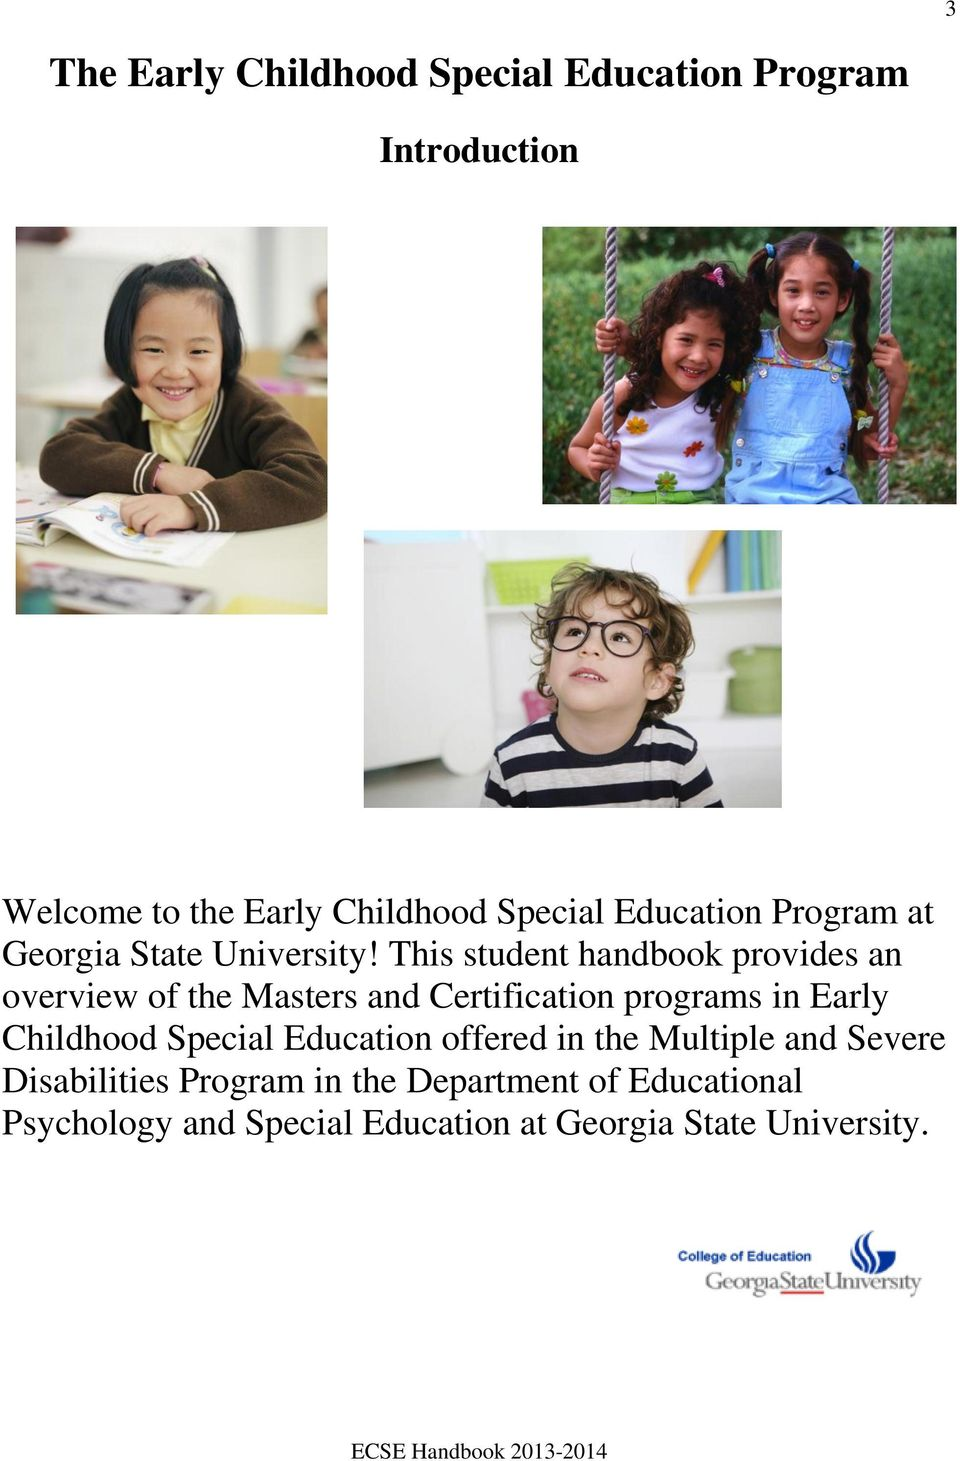 This student handbook provides an overview of the Masters and Certification programs in Early Childhood